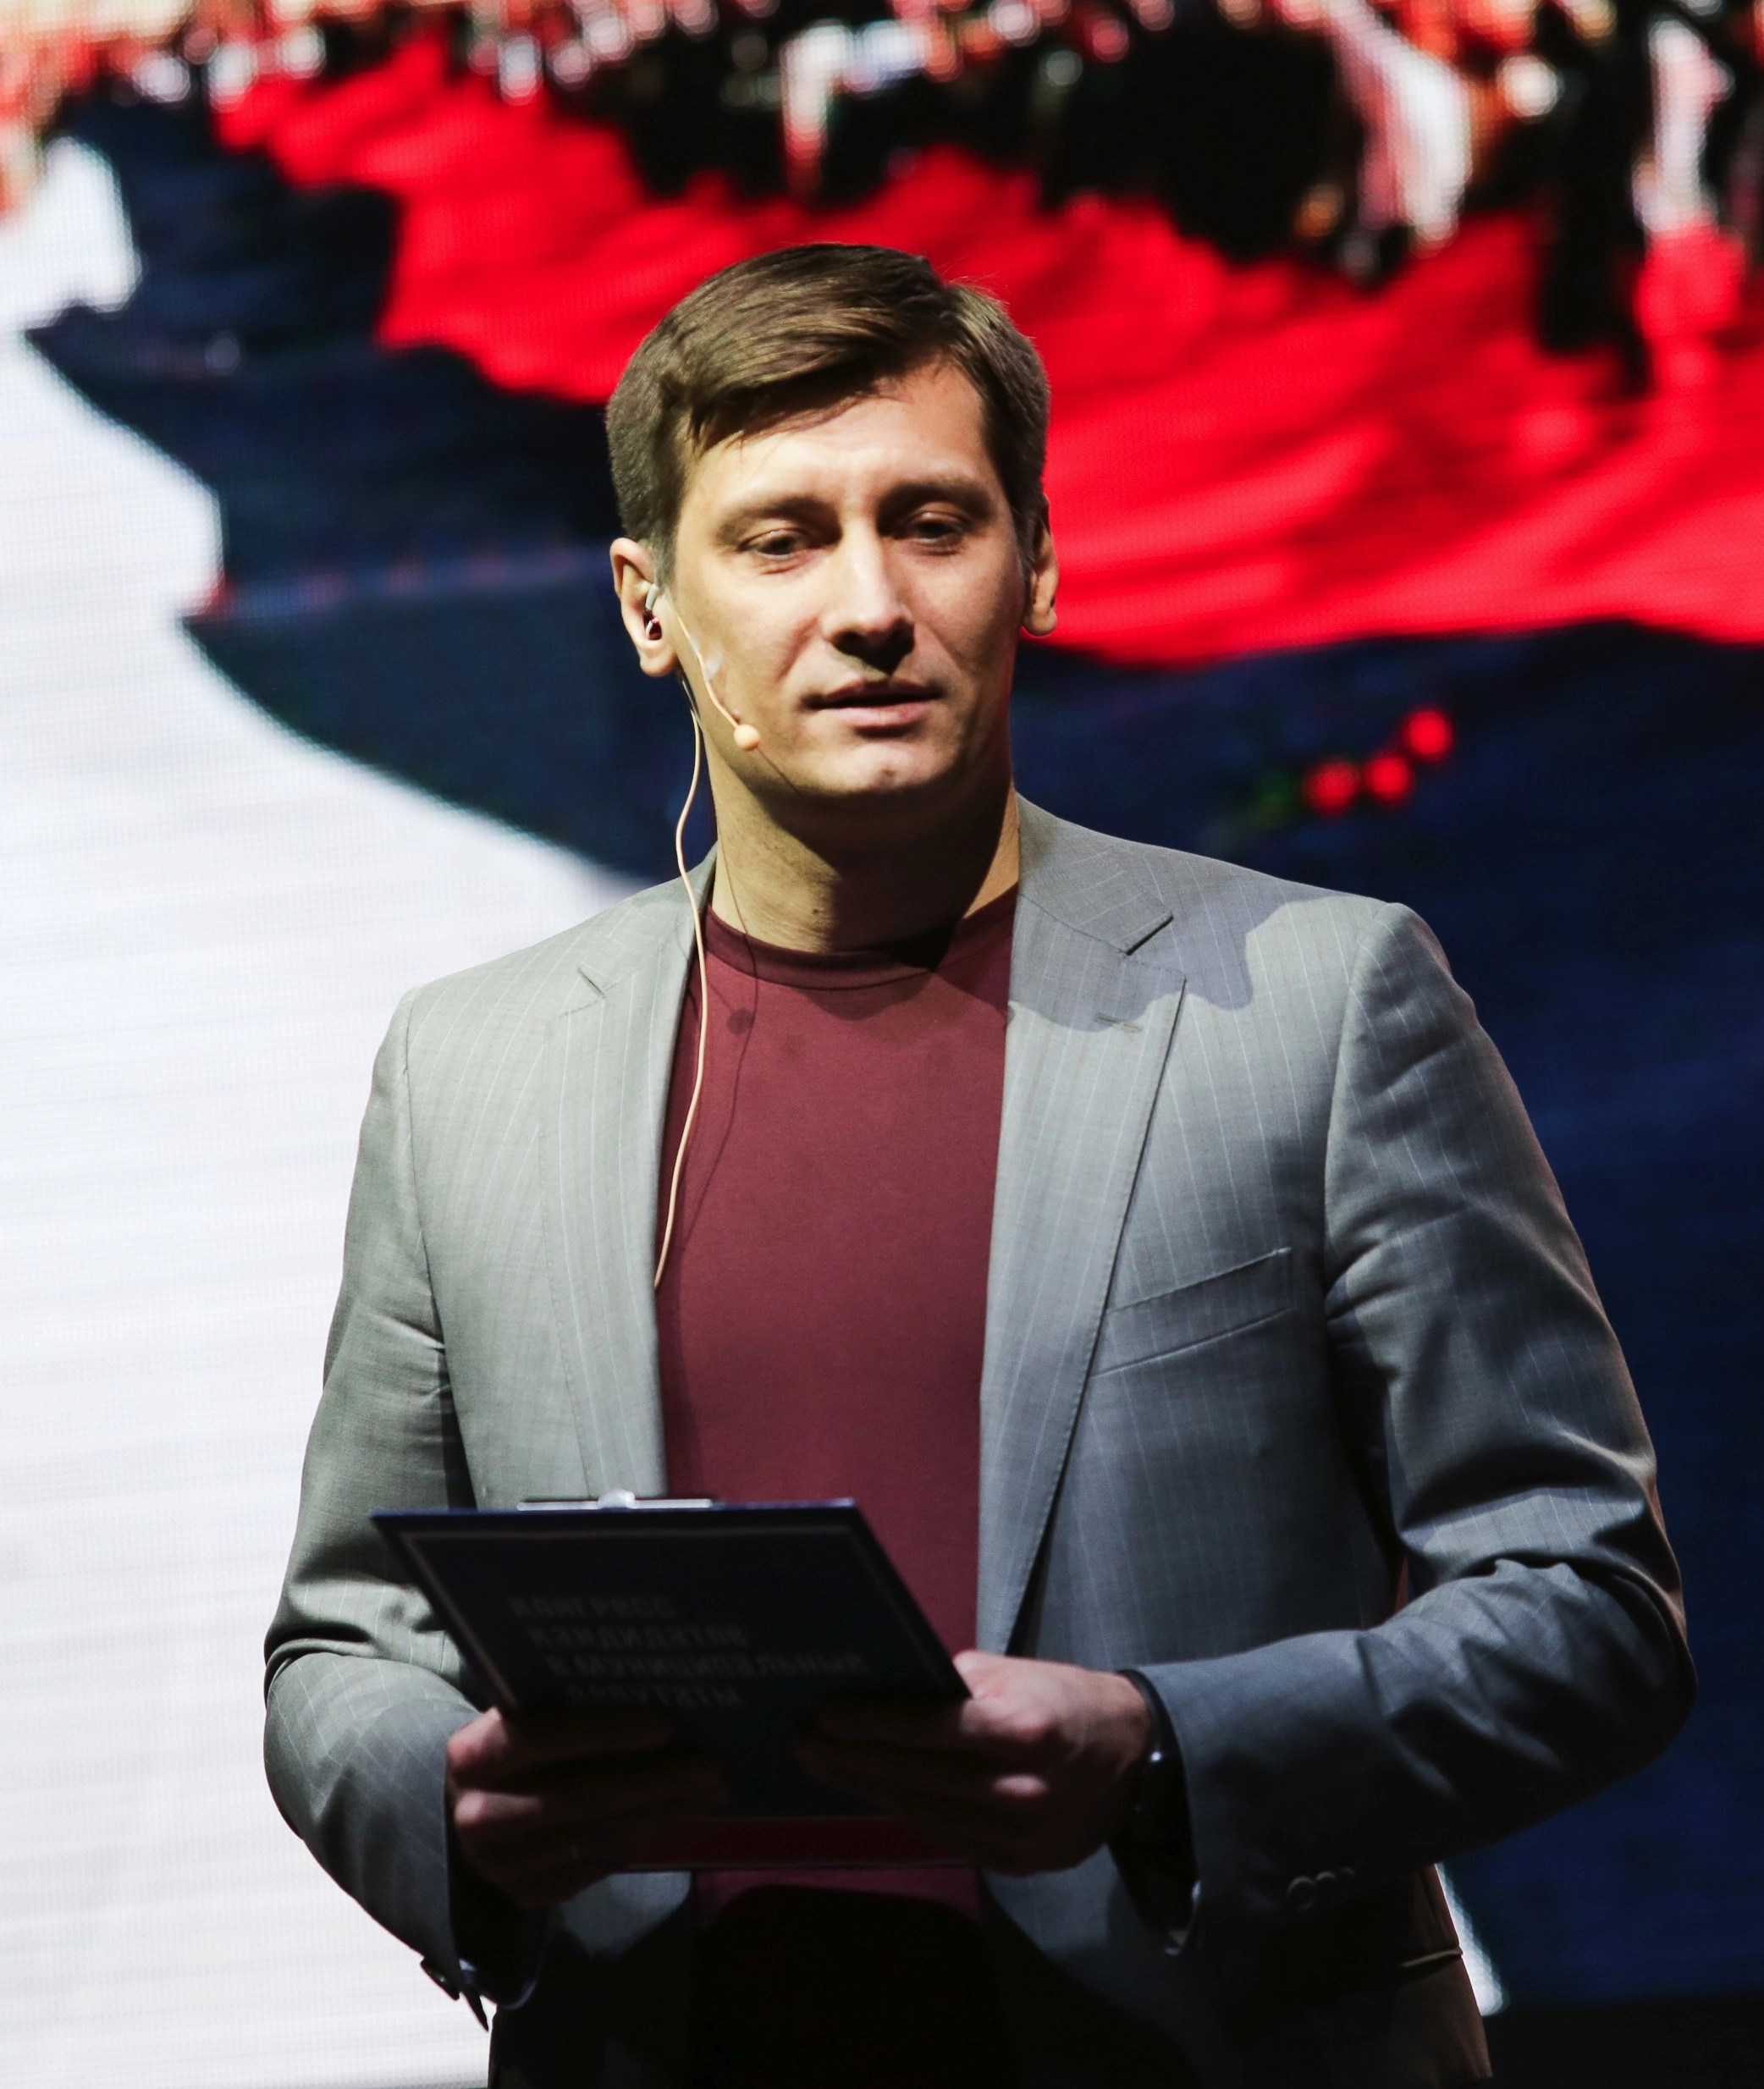 Legal Case of the Week: Dmitry Gudkov arrested, his home searched and released without charge